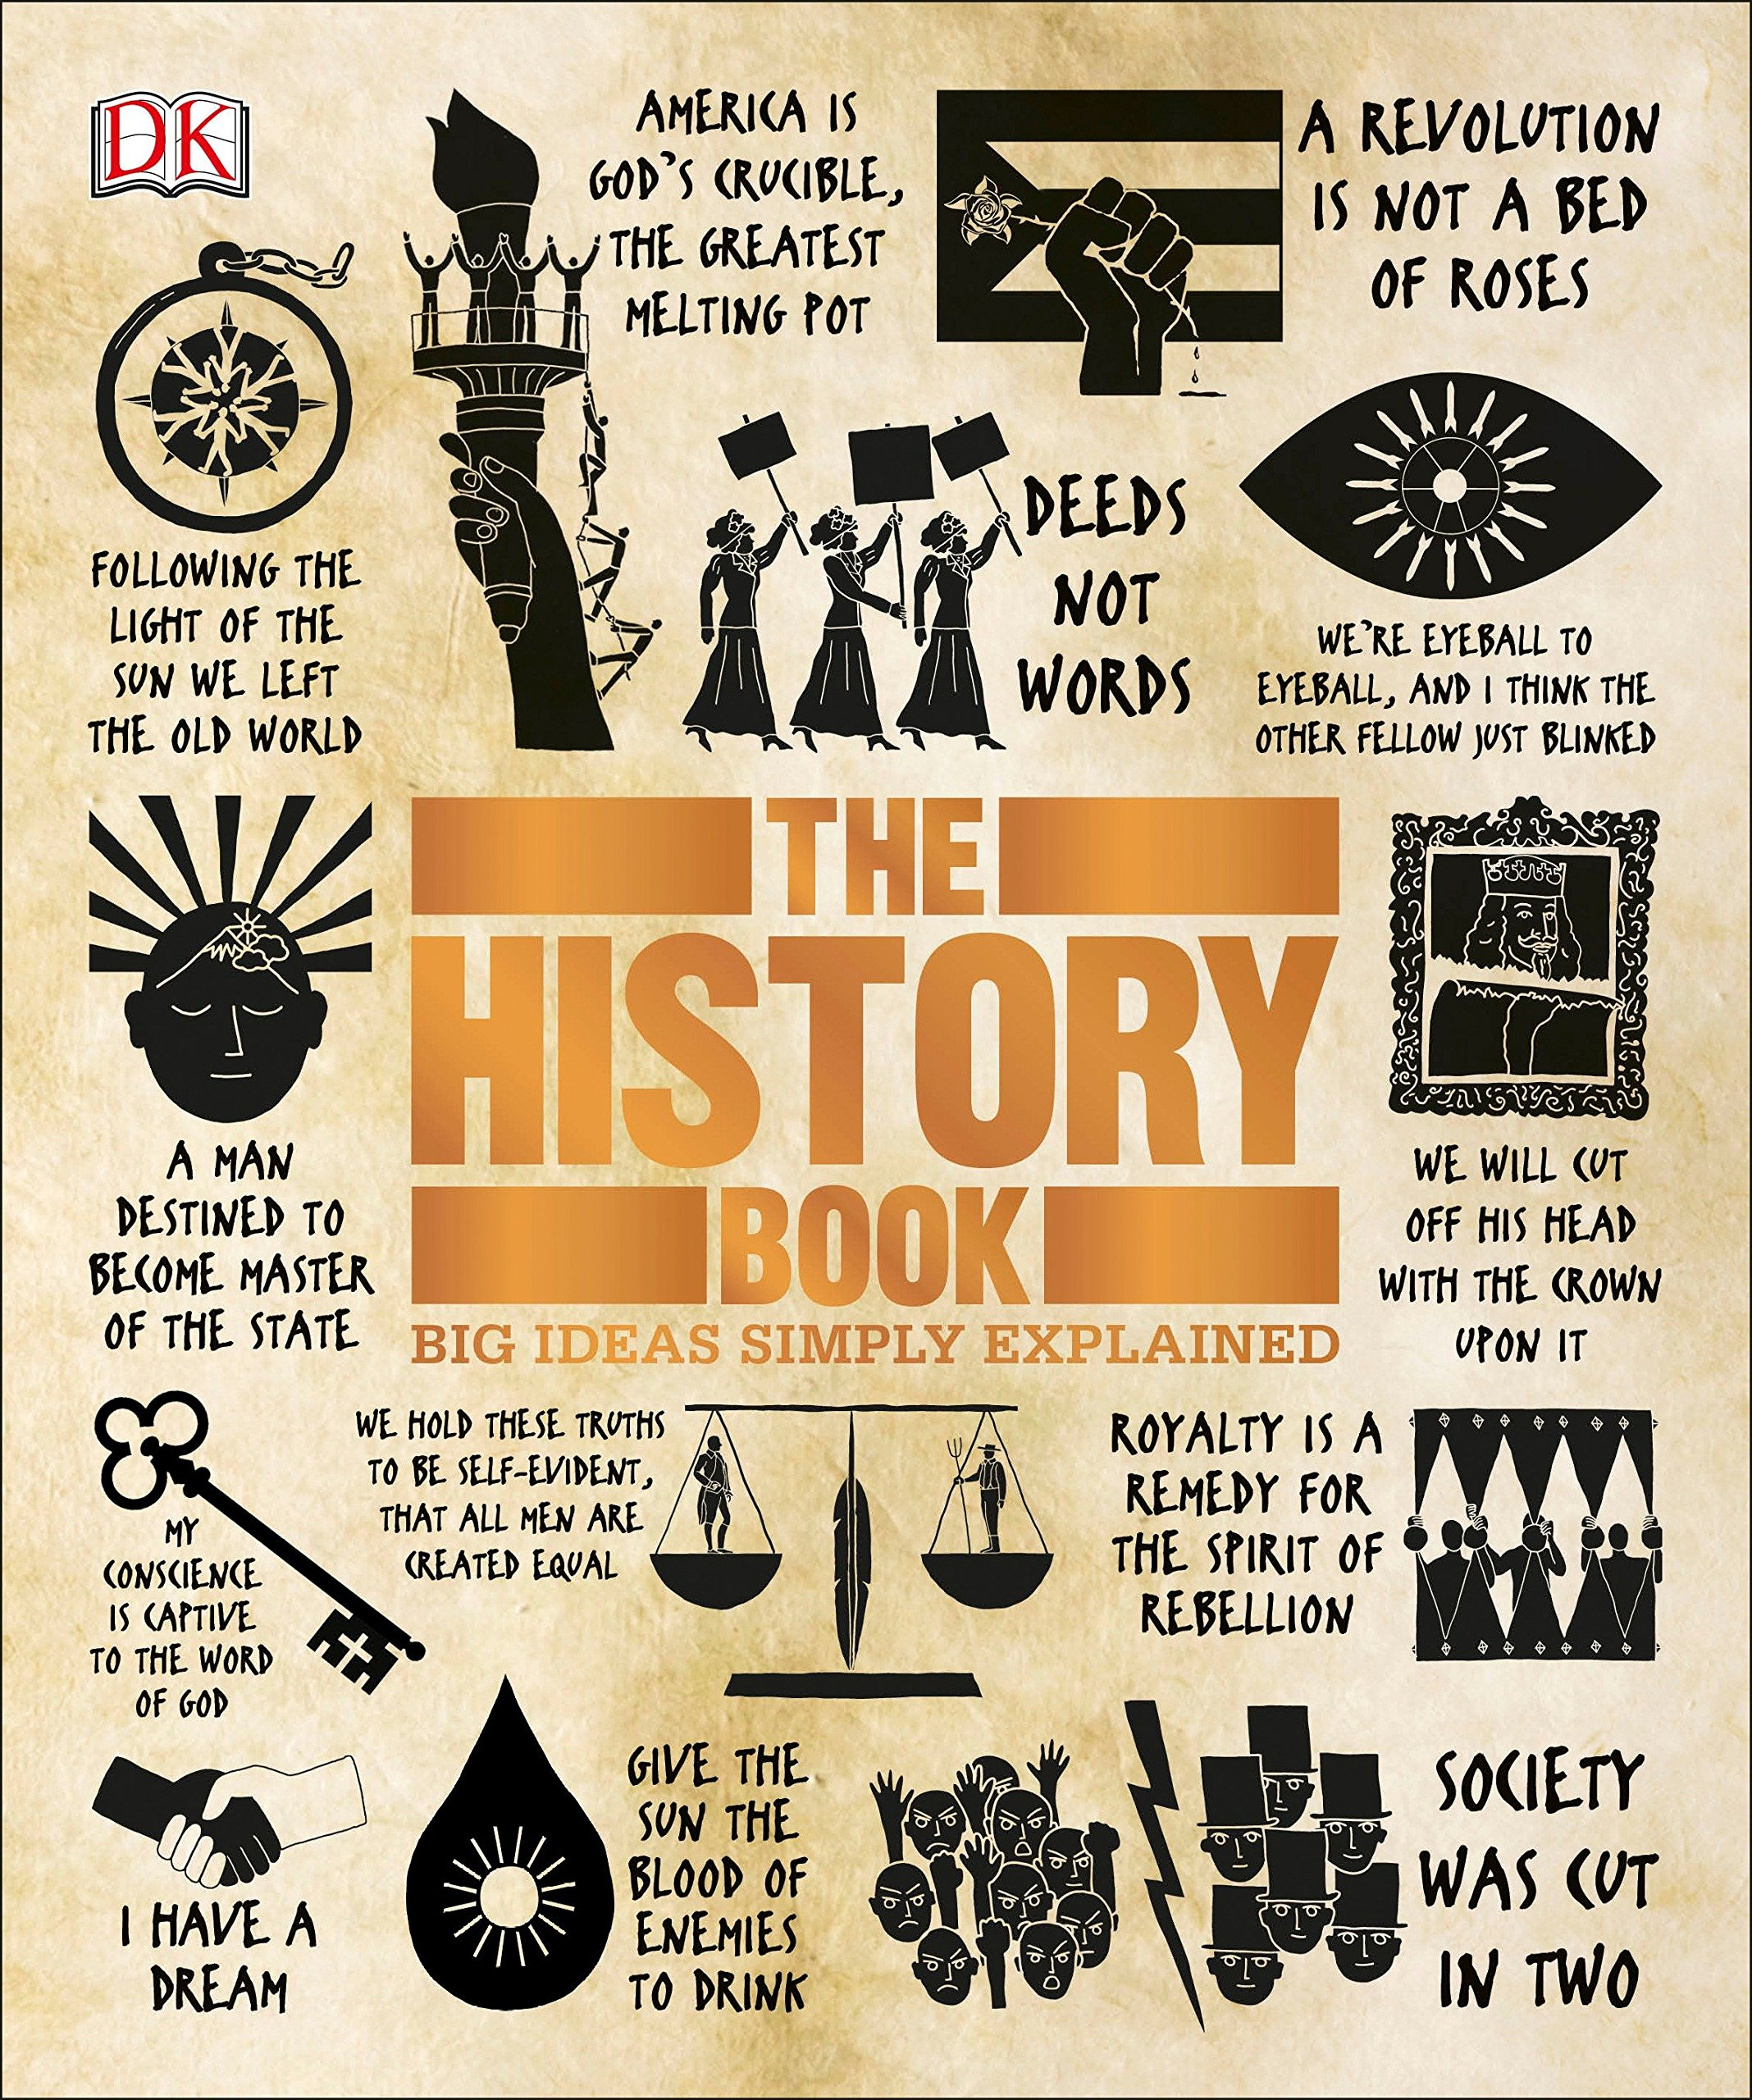 The History Book: Big Ideas Simply Explained: Amazon.co.uk: DK ...